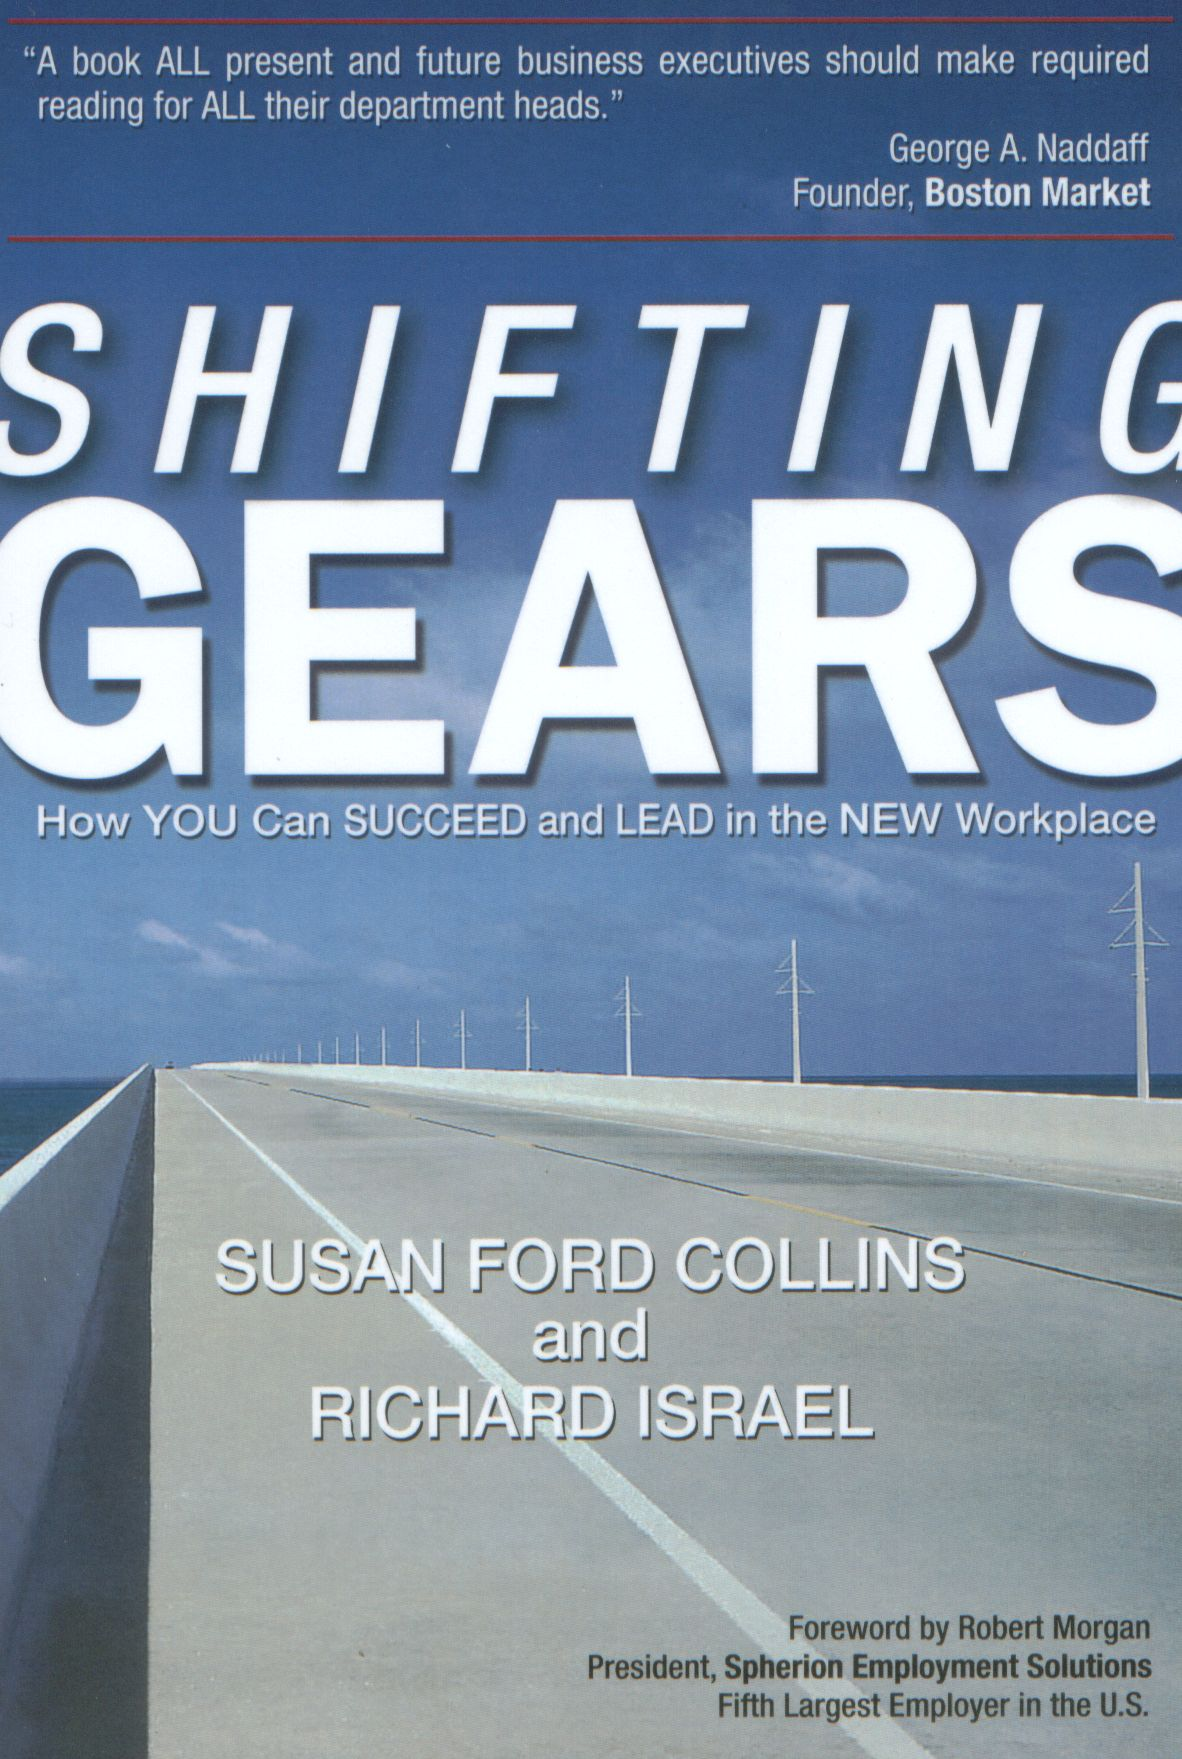 Copy of Shifting Gears